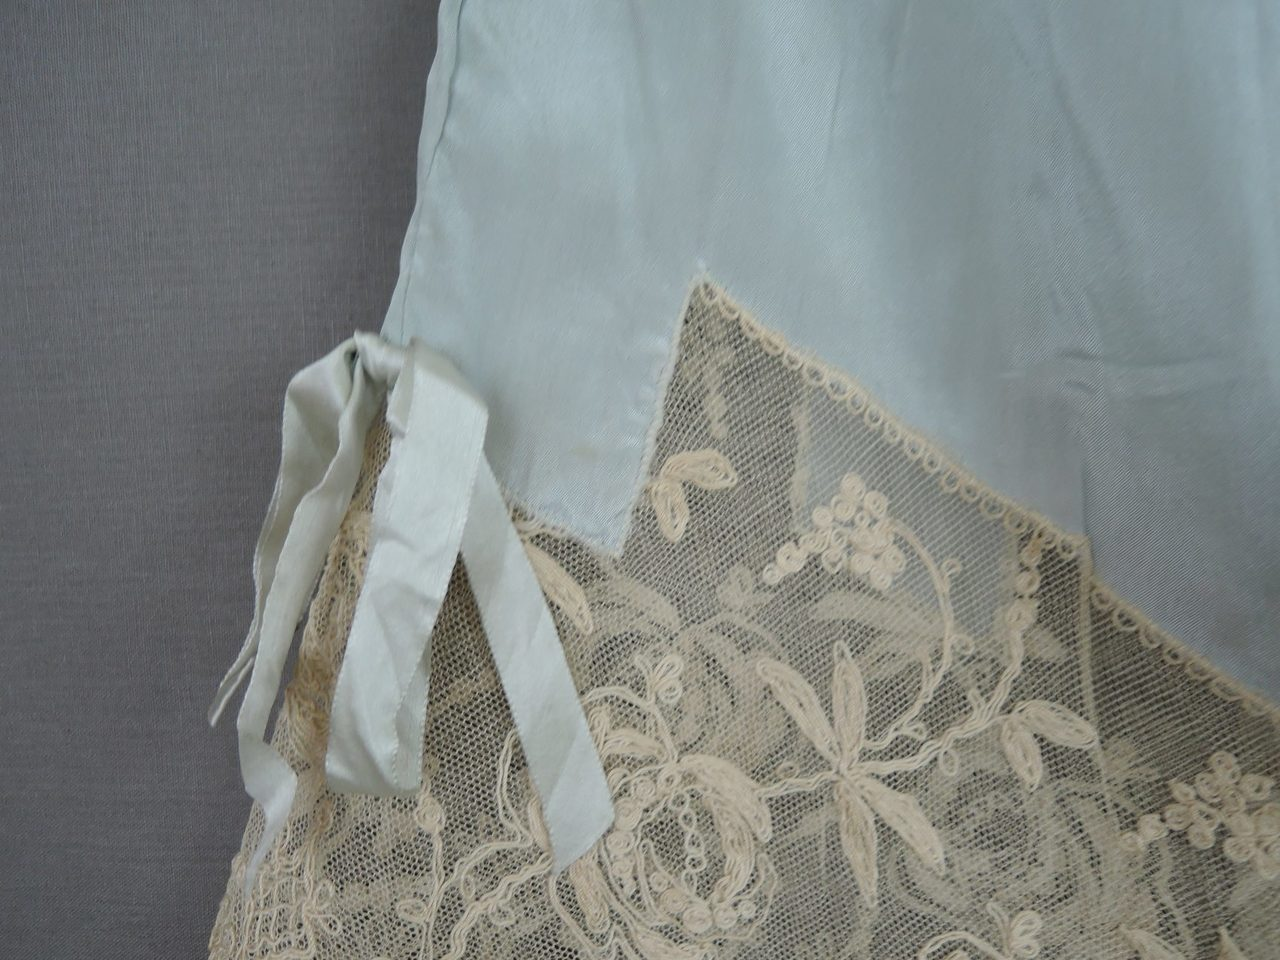 Antique 1920s Silk Bra and Panties Set, Bandeau, Blue-Green with Ivory Lace